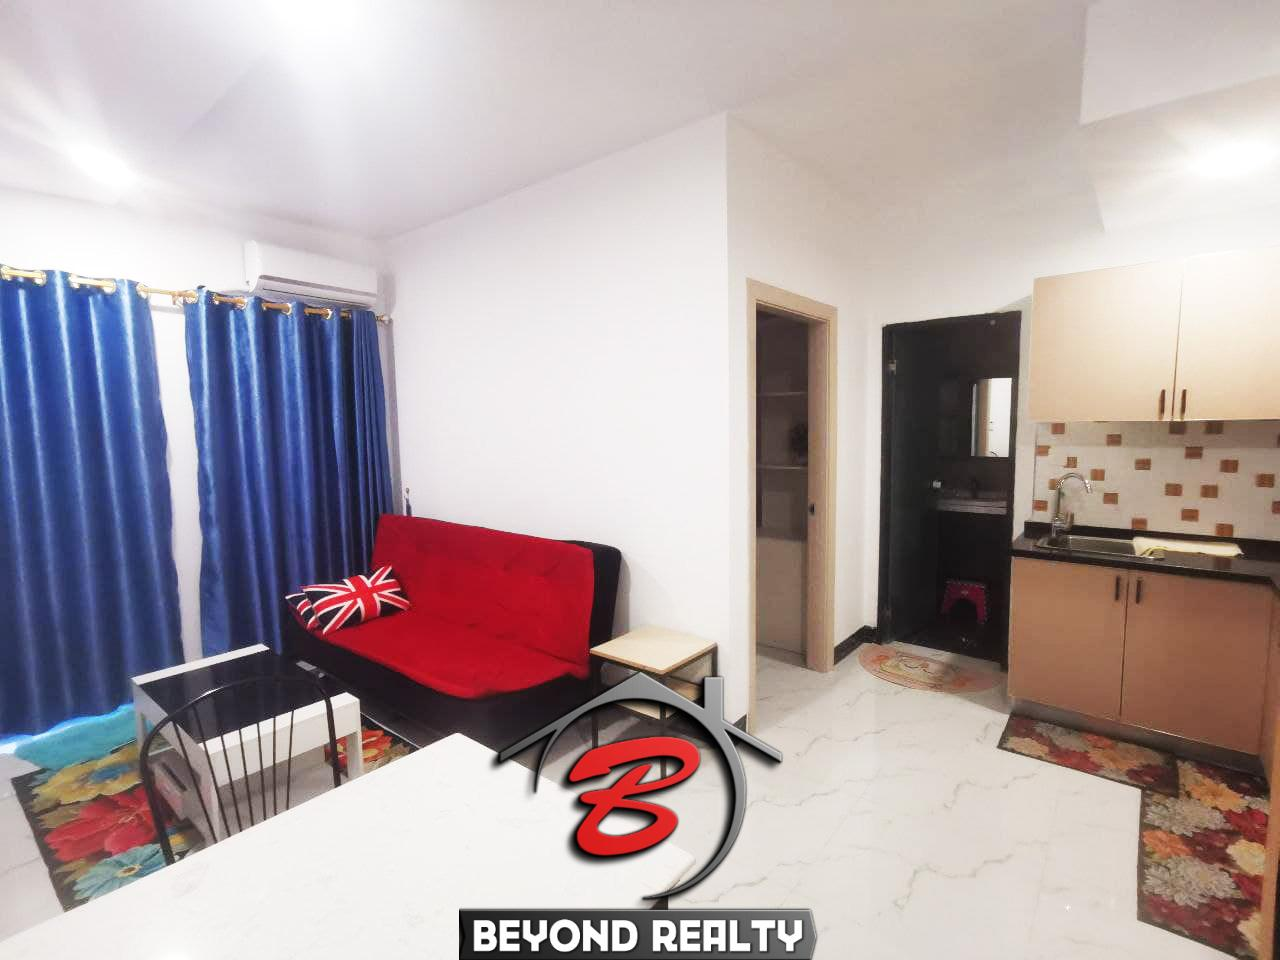 the living room of the 1-bedroom serviced condo for rent in Boeung Tompun Phnom Penh Cambodia